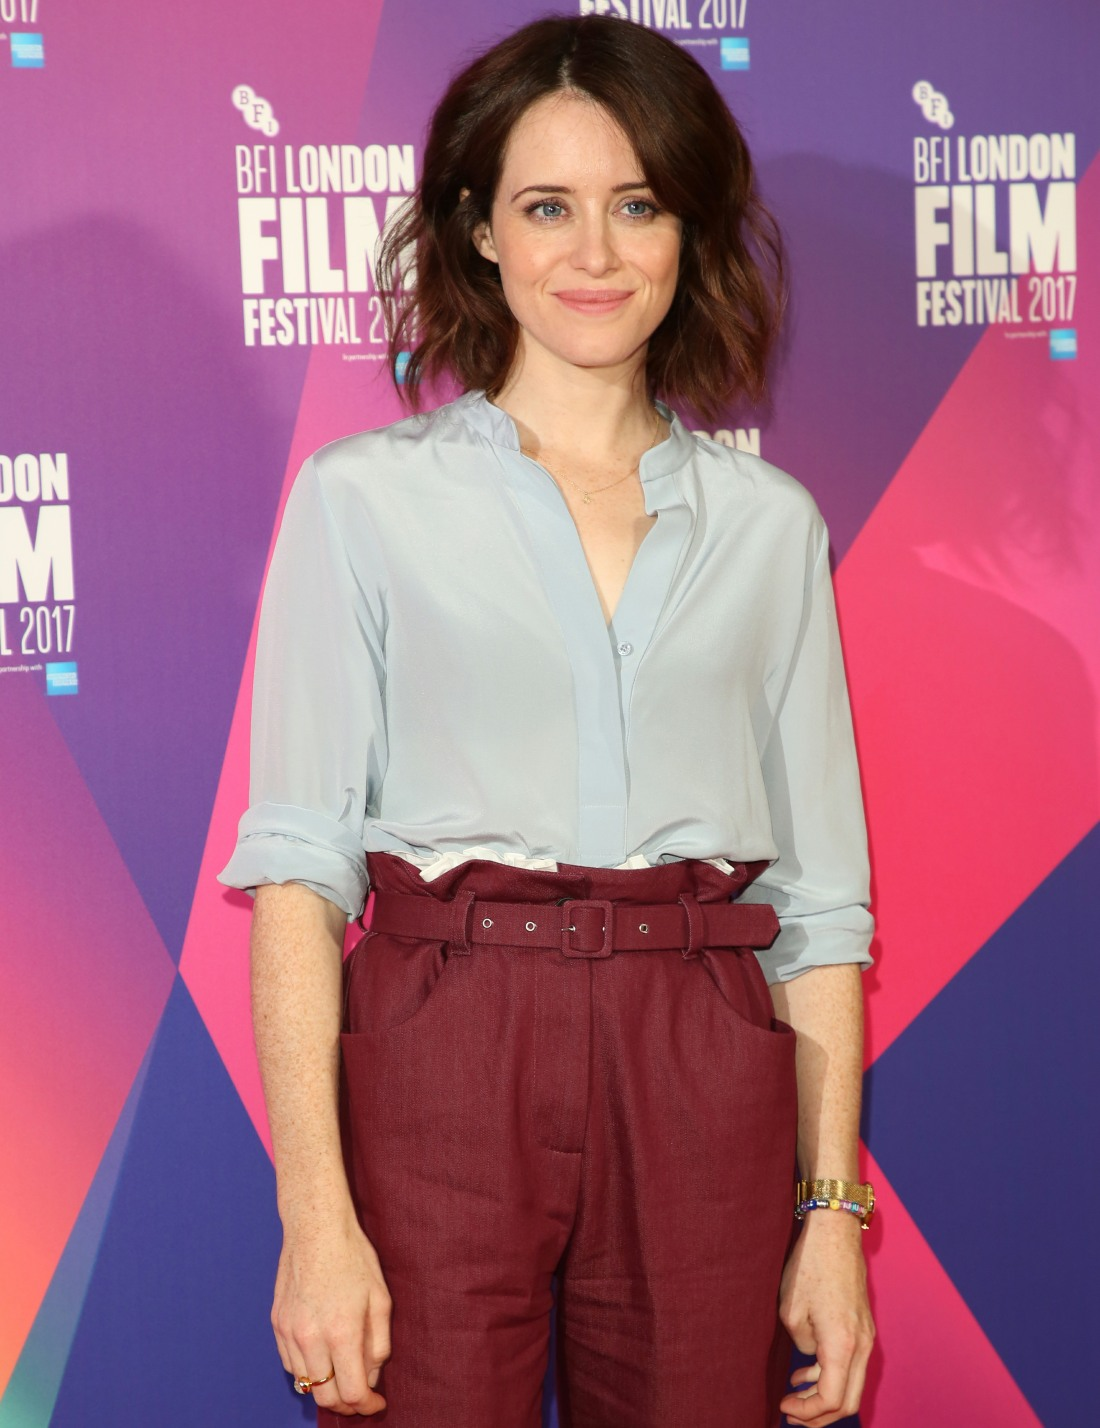 BFI London Film Festival 'Breathe' - Photocall